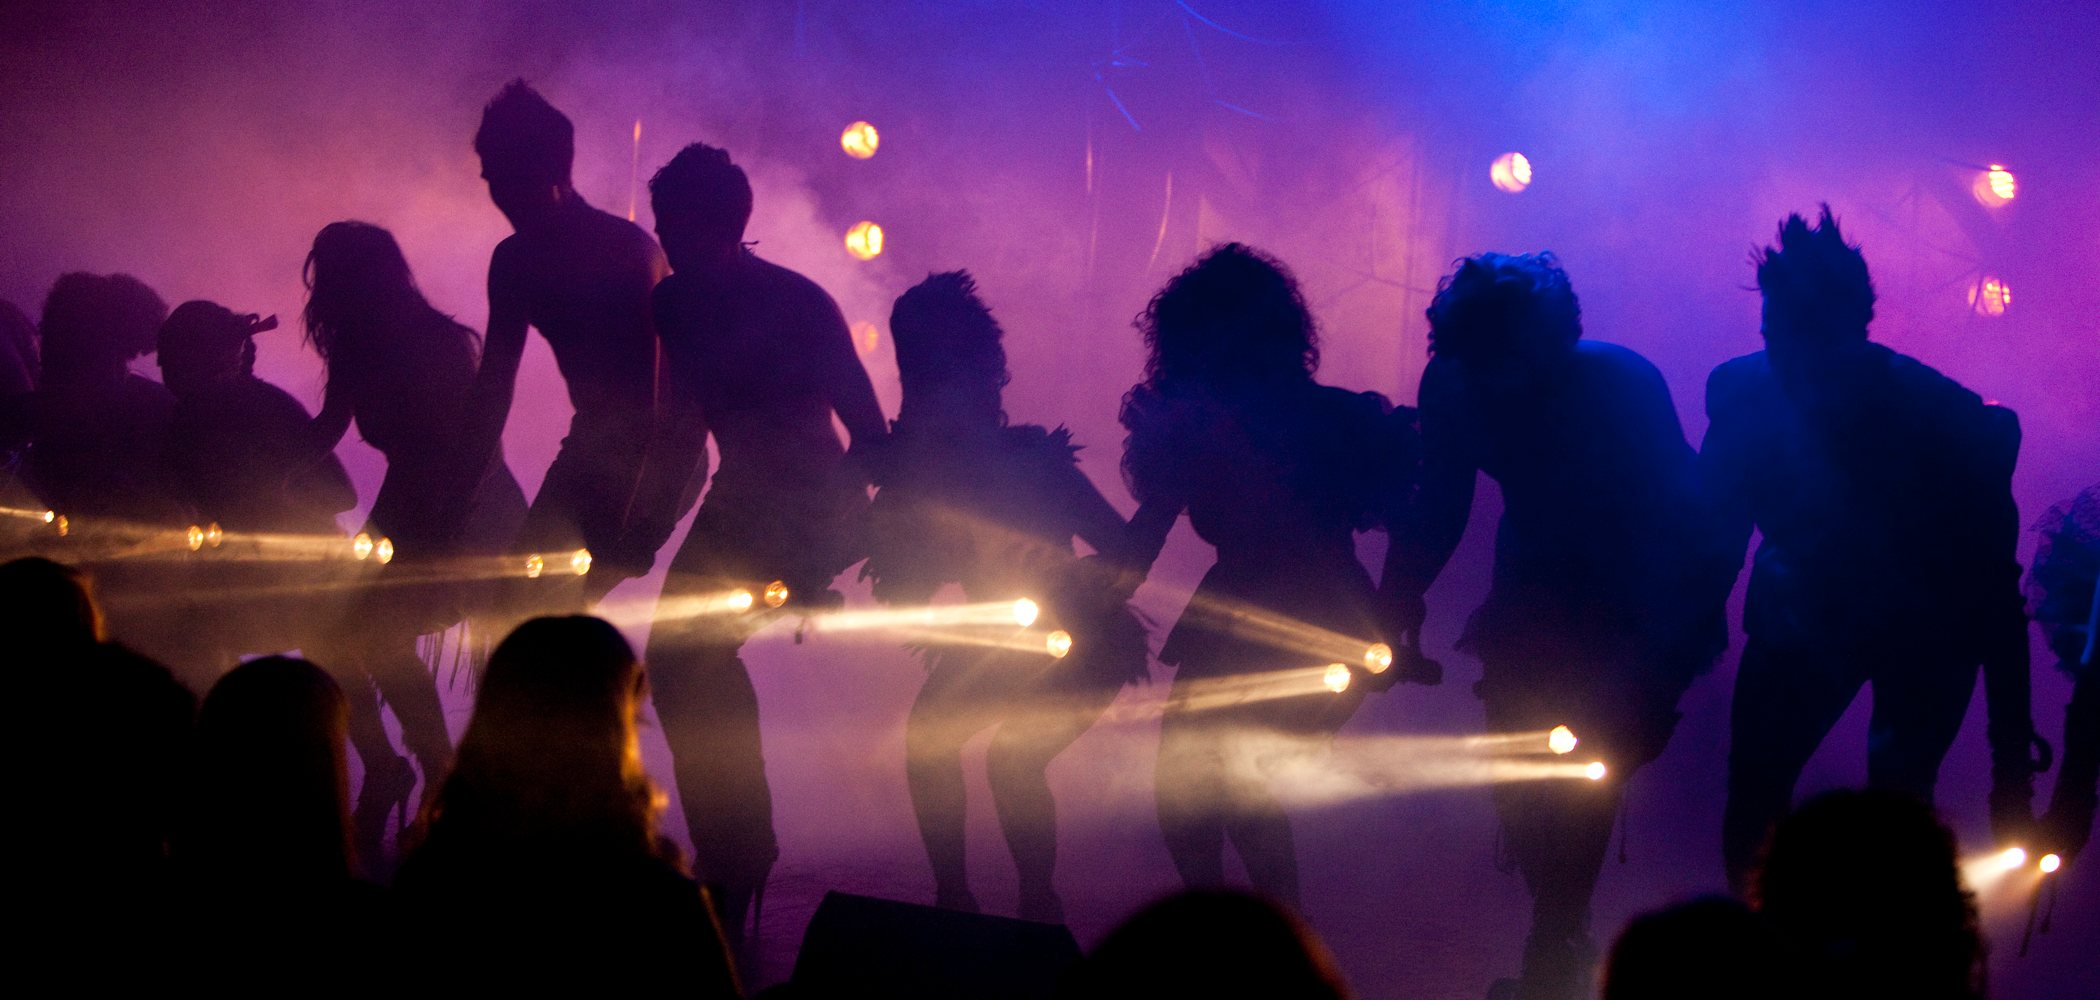 Performers on stage with dramatic lighting